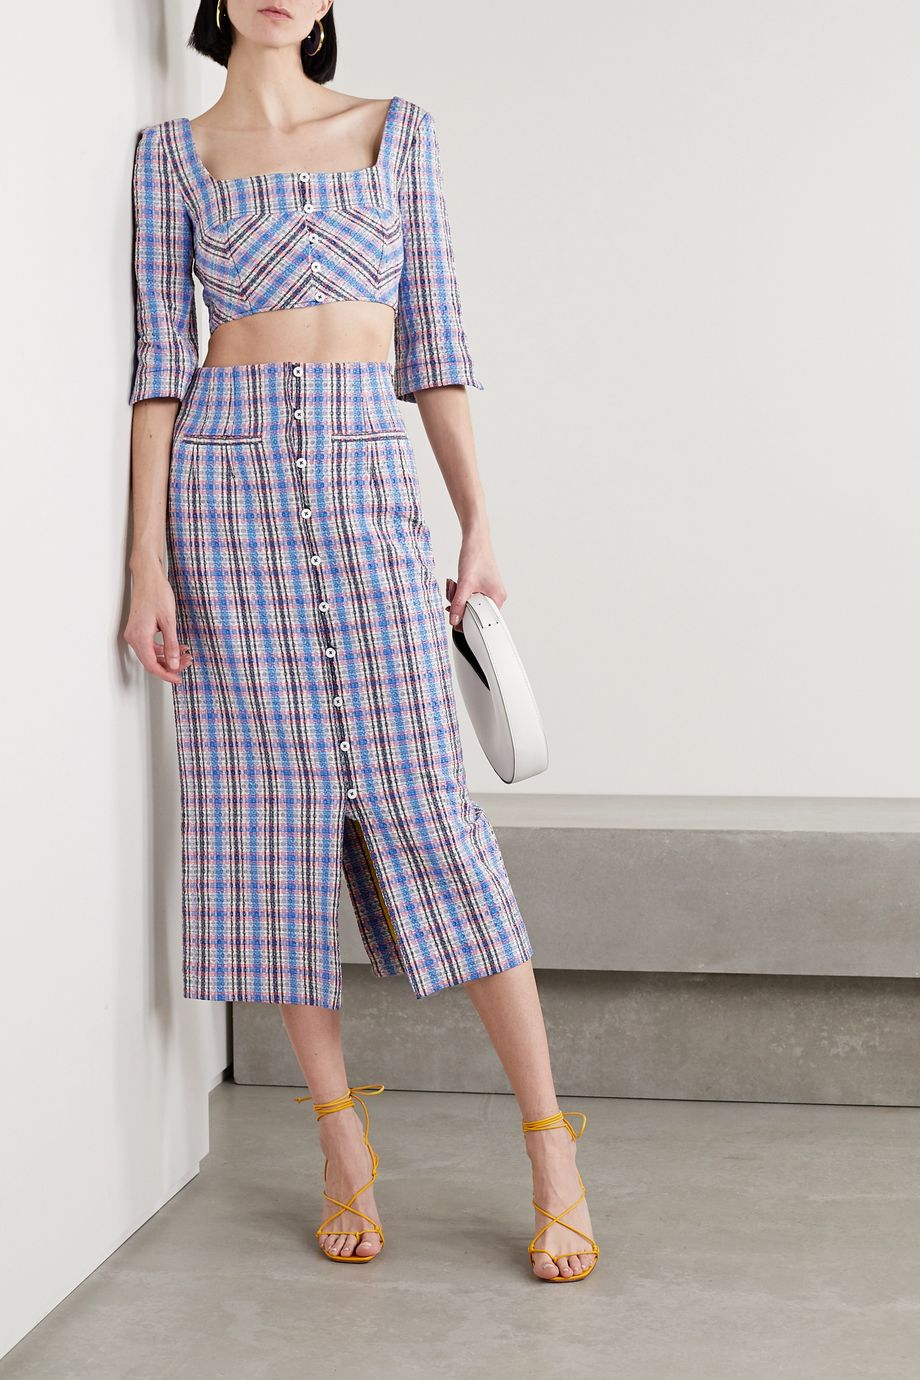 Rosie Assoulin Cropped checked cotton-blend jacquard top